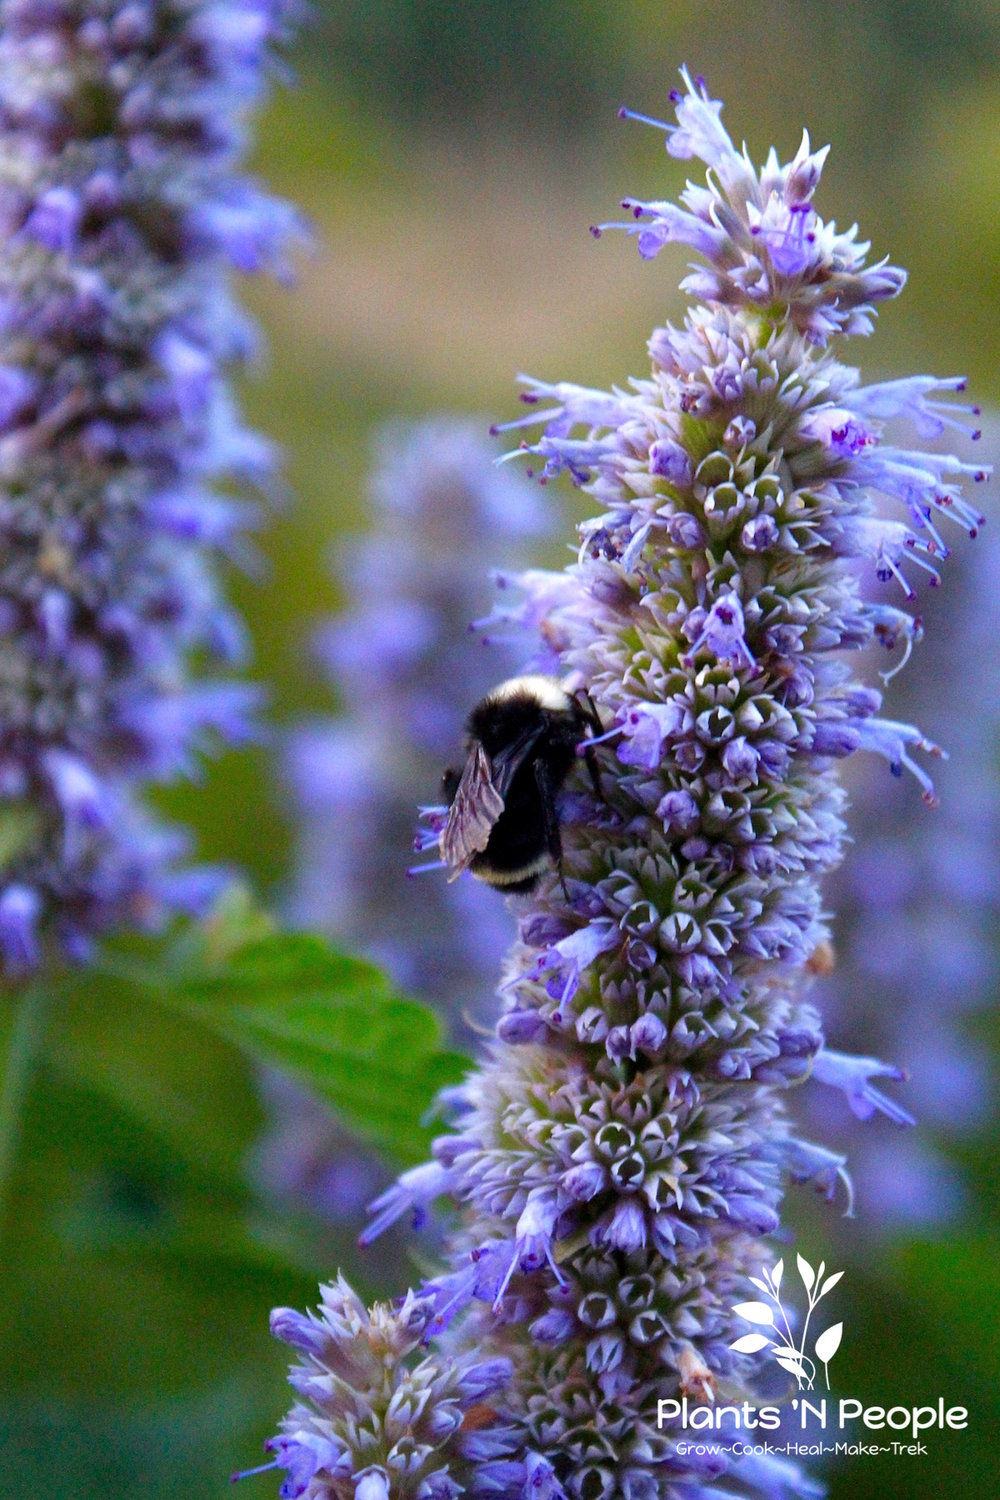 Anise Hyssop (Agastache foeniculum)A lovely herb in the garden helps sustain pollinators.